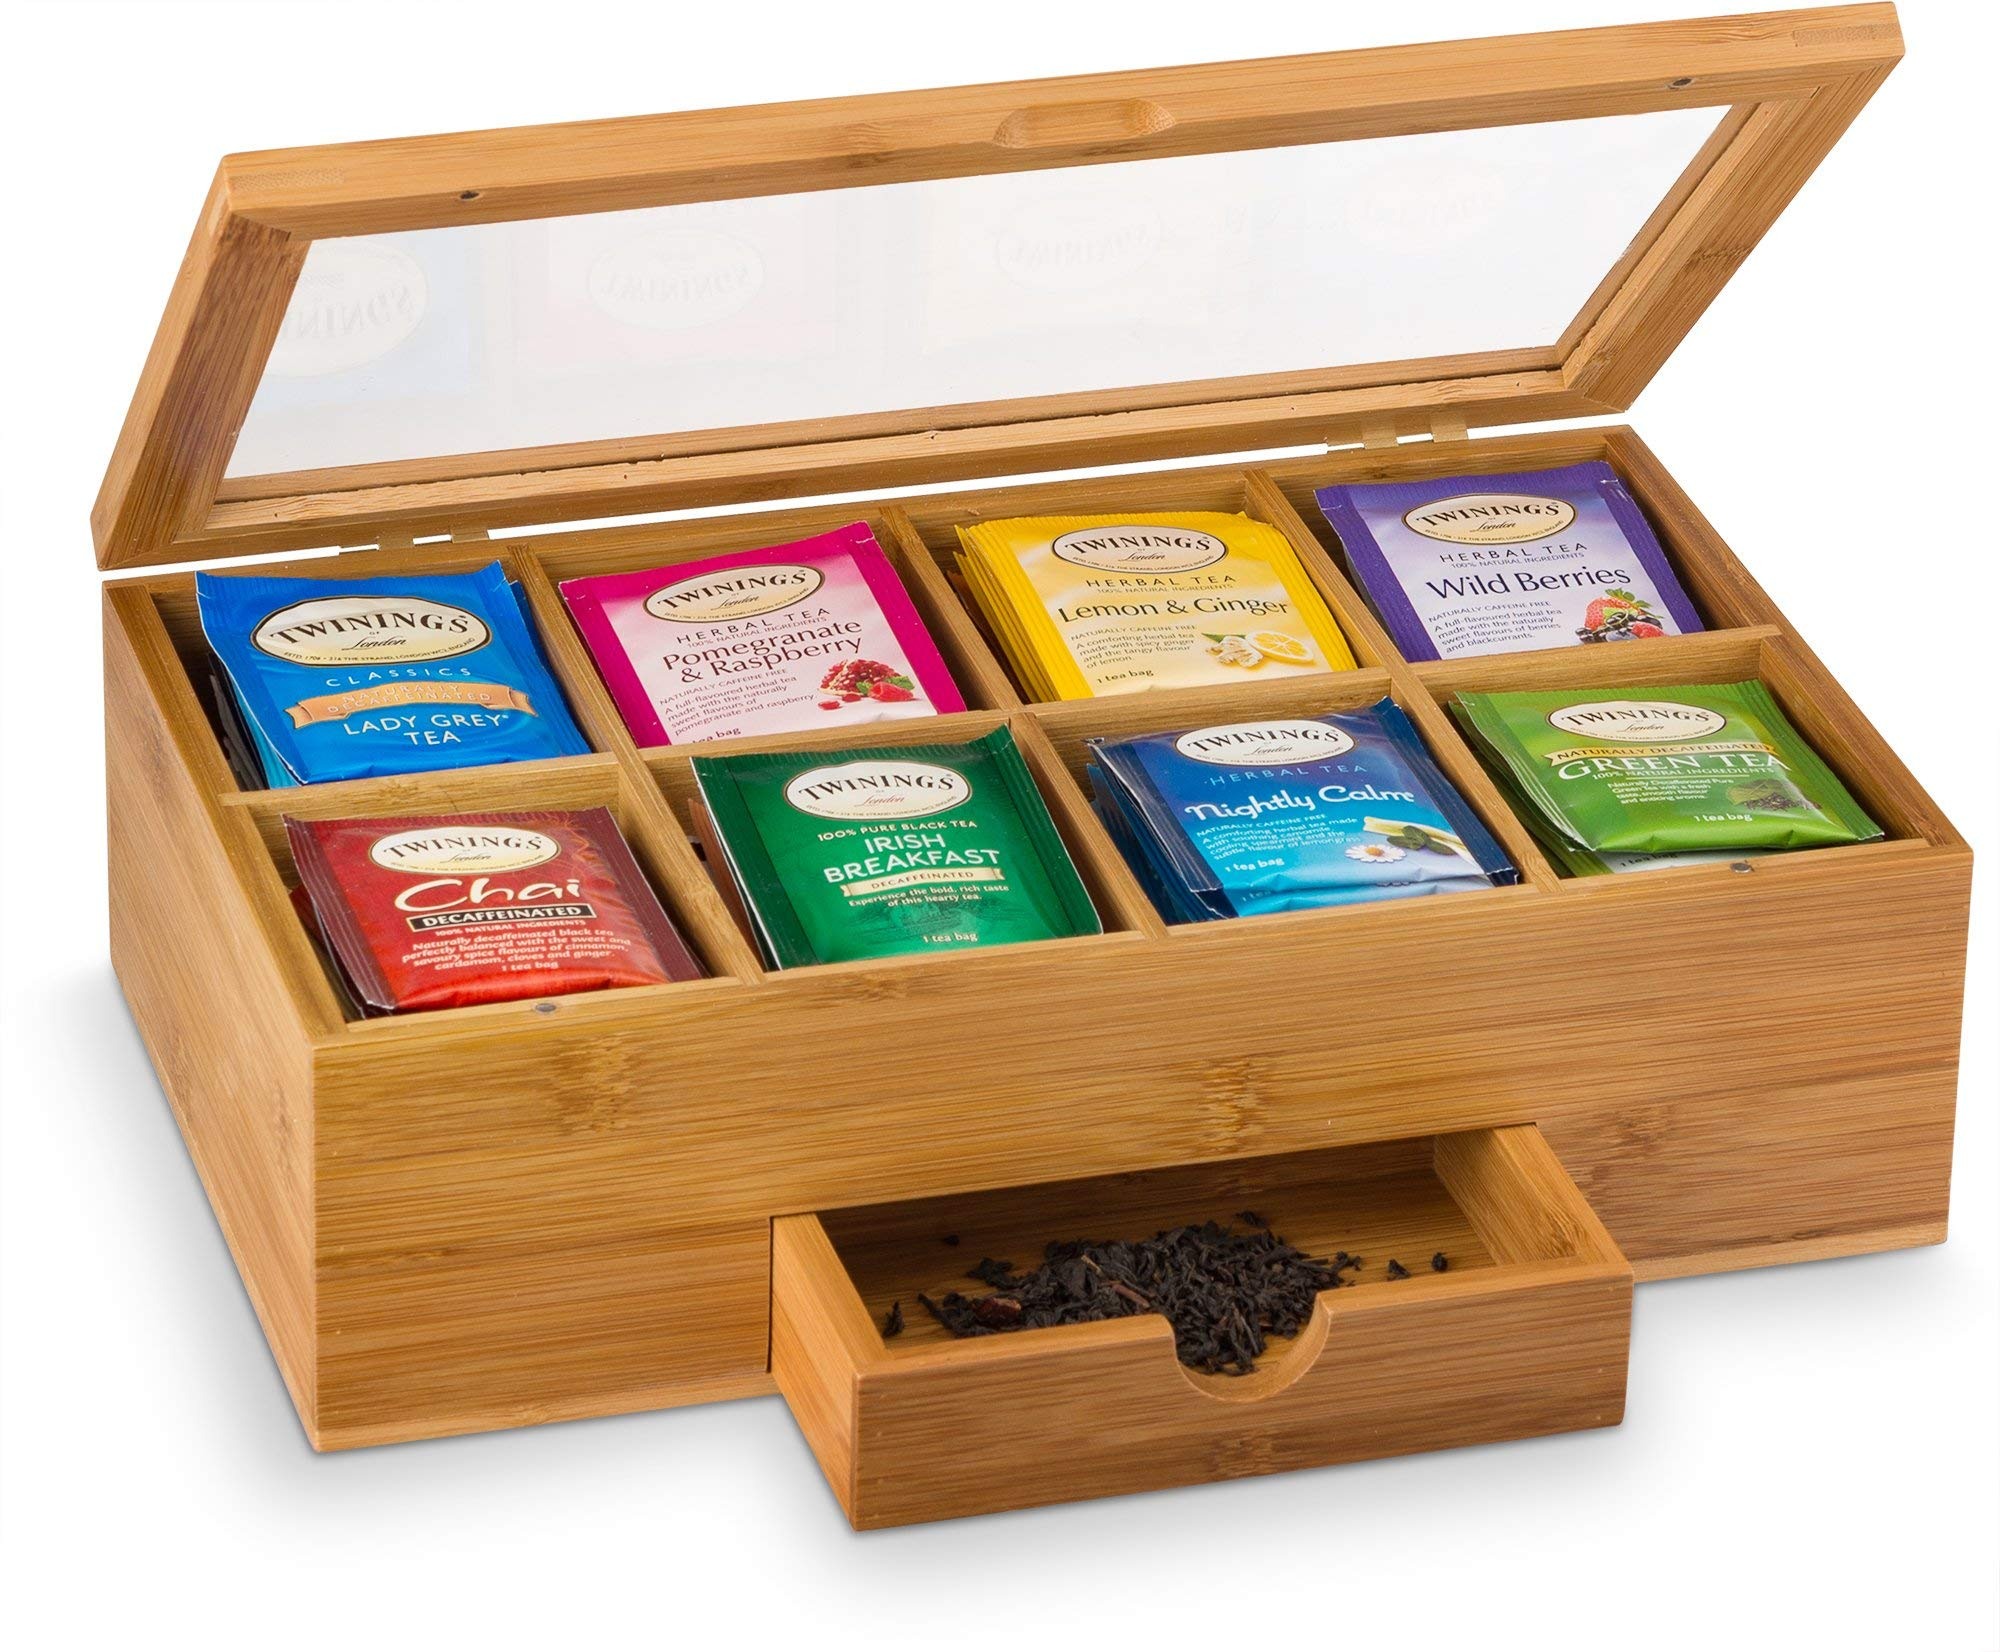 (Renewed) Bamboo Tea Box - Wooden Tea Chest Storage Organizer with Small Drawer for Loose Tea and Spoons | Great Mothers Day Gift Idea by Bambüsi